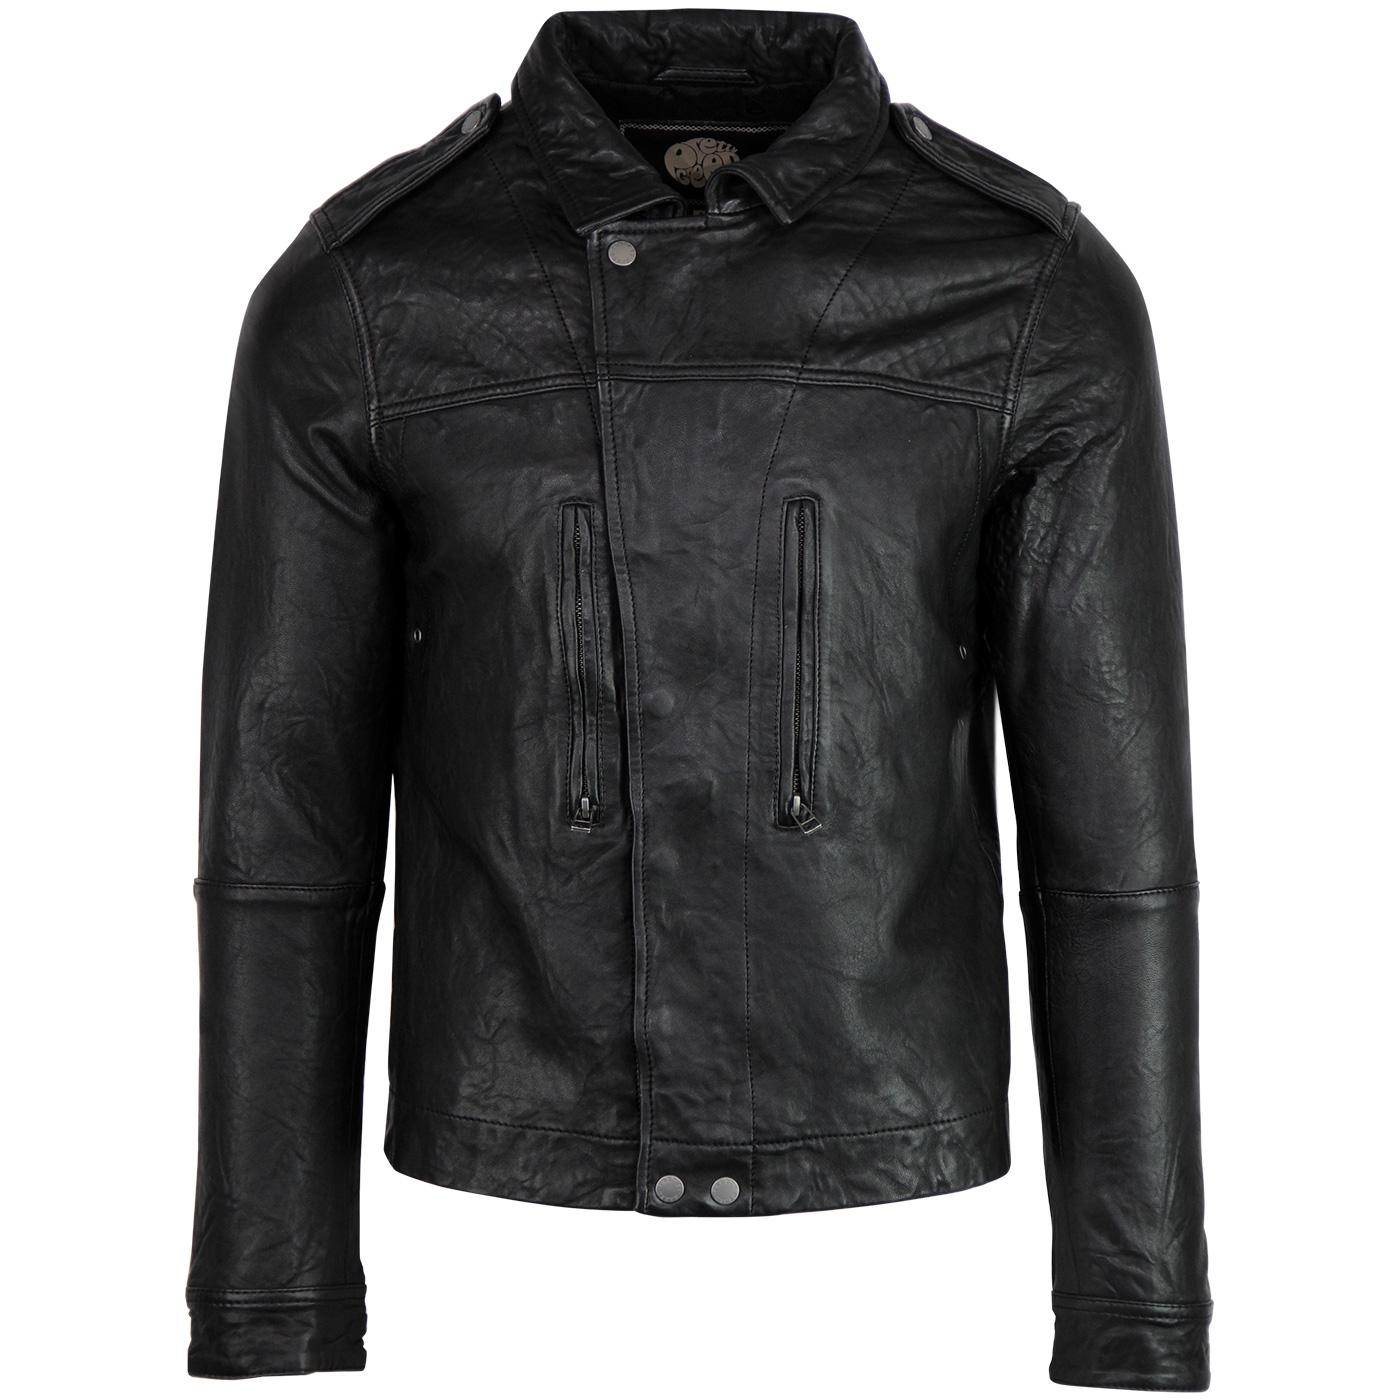 PRETTY GREEN 70's Retro Indie Leather Biker Jacket